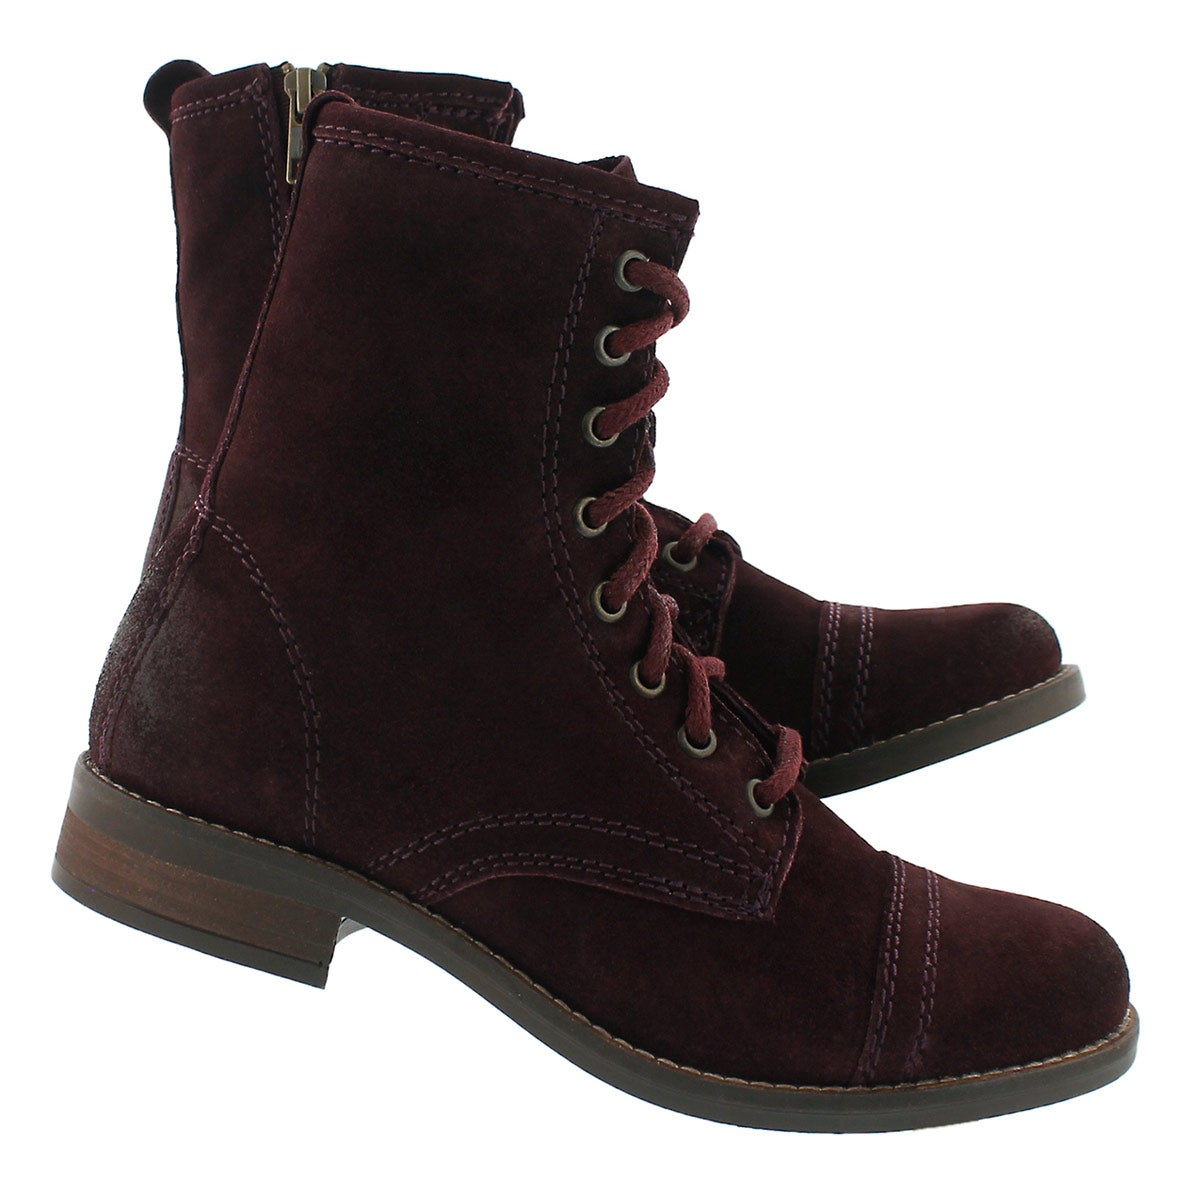 Lds Charrie wine lace up combat boot